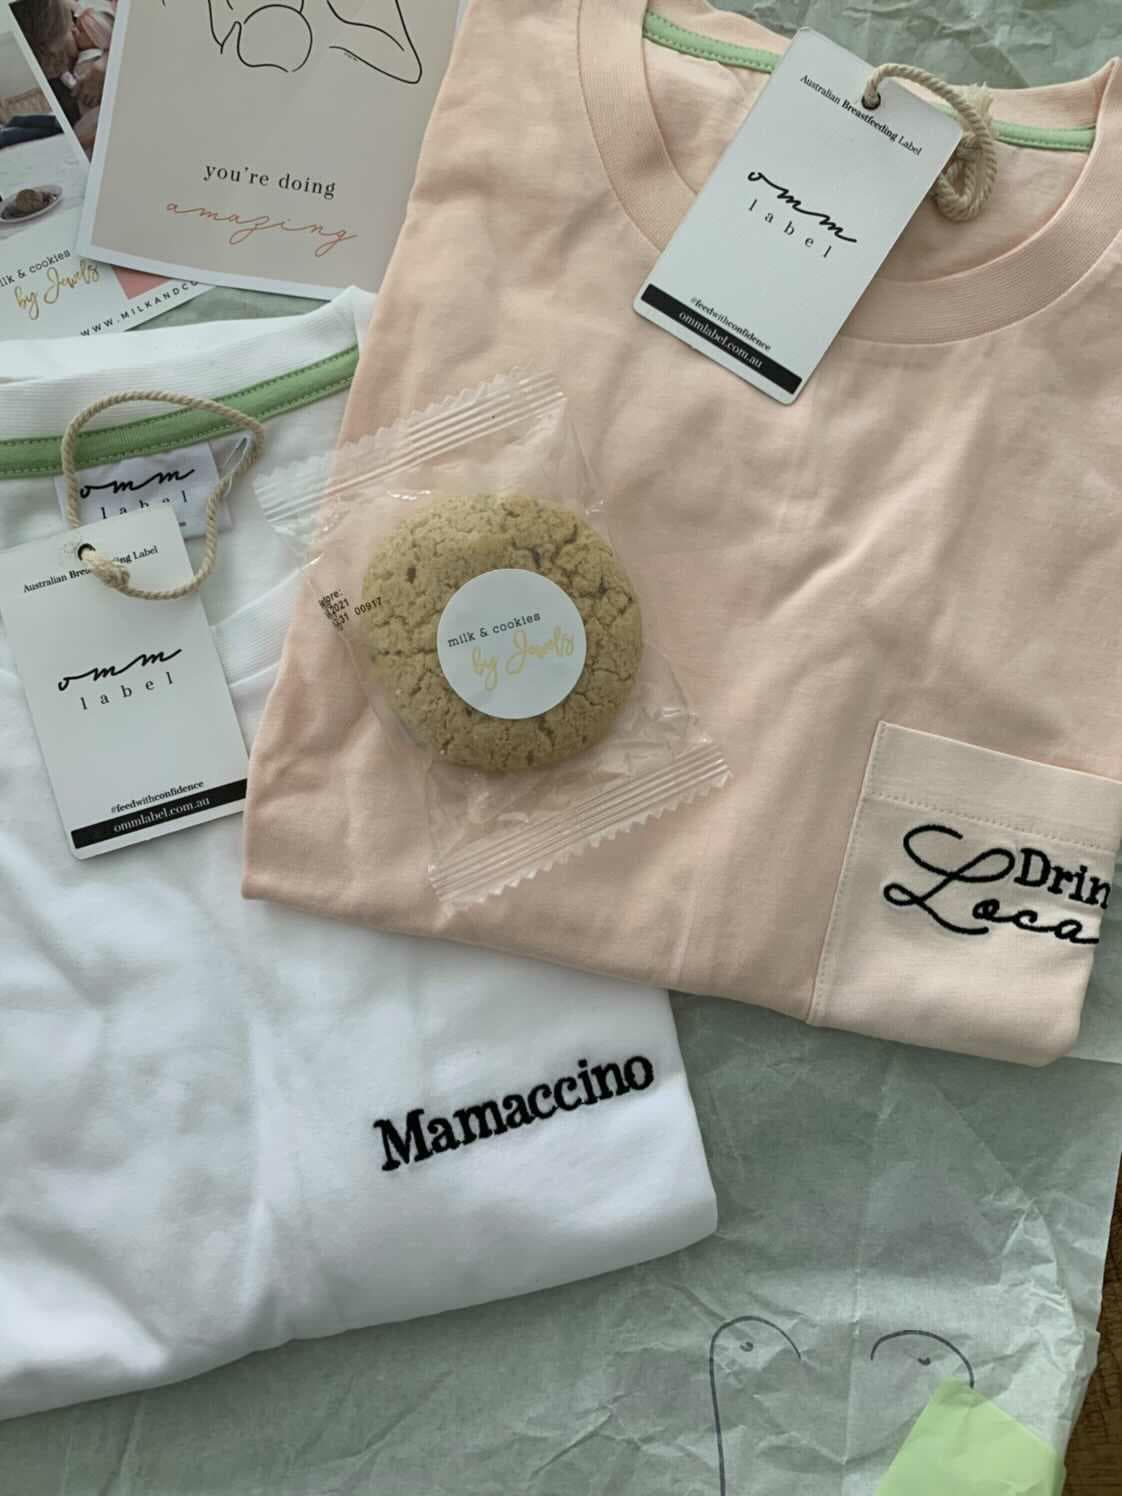 OMM Label: Revolutionary Fashion for Moms on a Mission